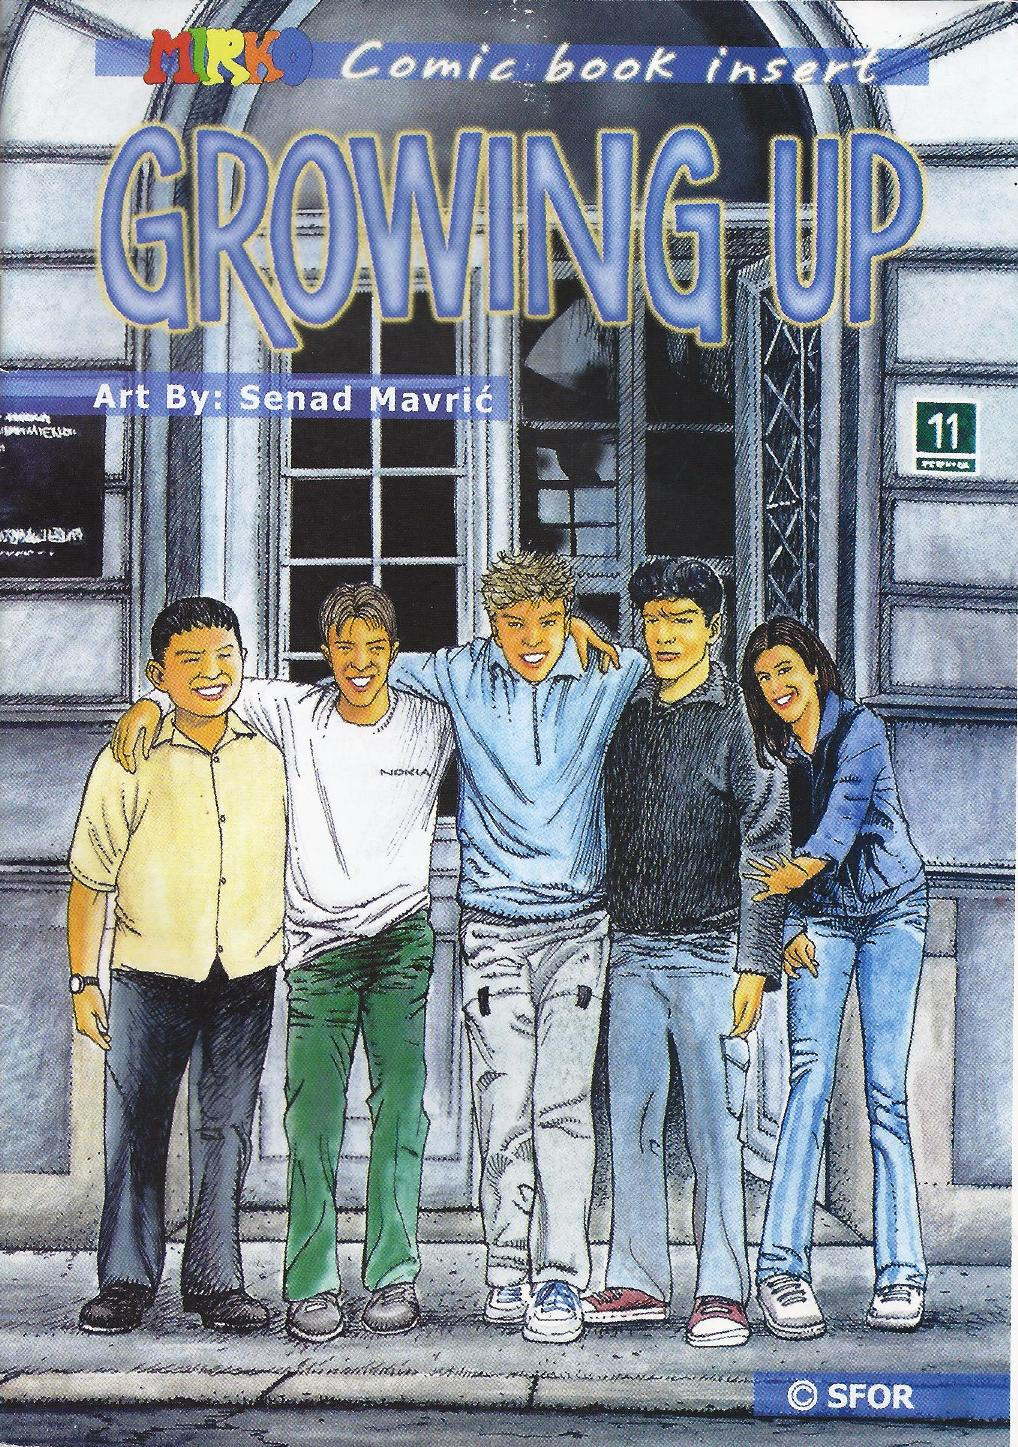 GrowingUpBosniaComic.jpg (504052 bytes)